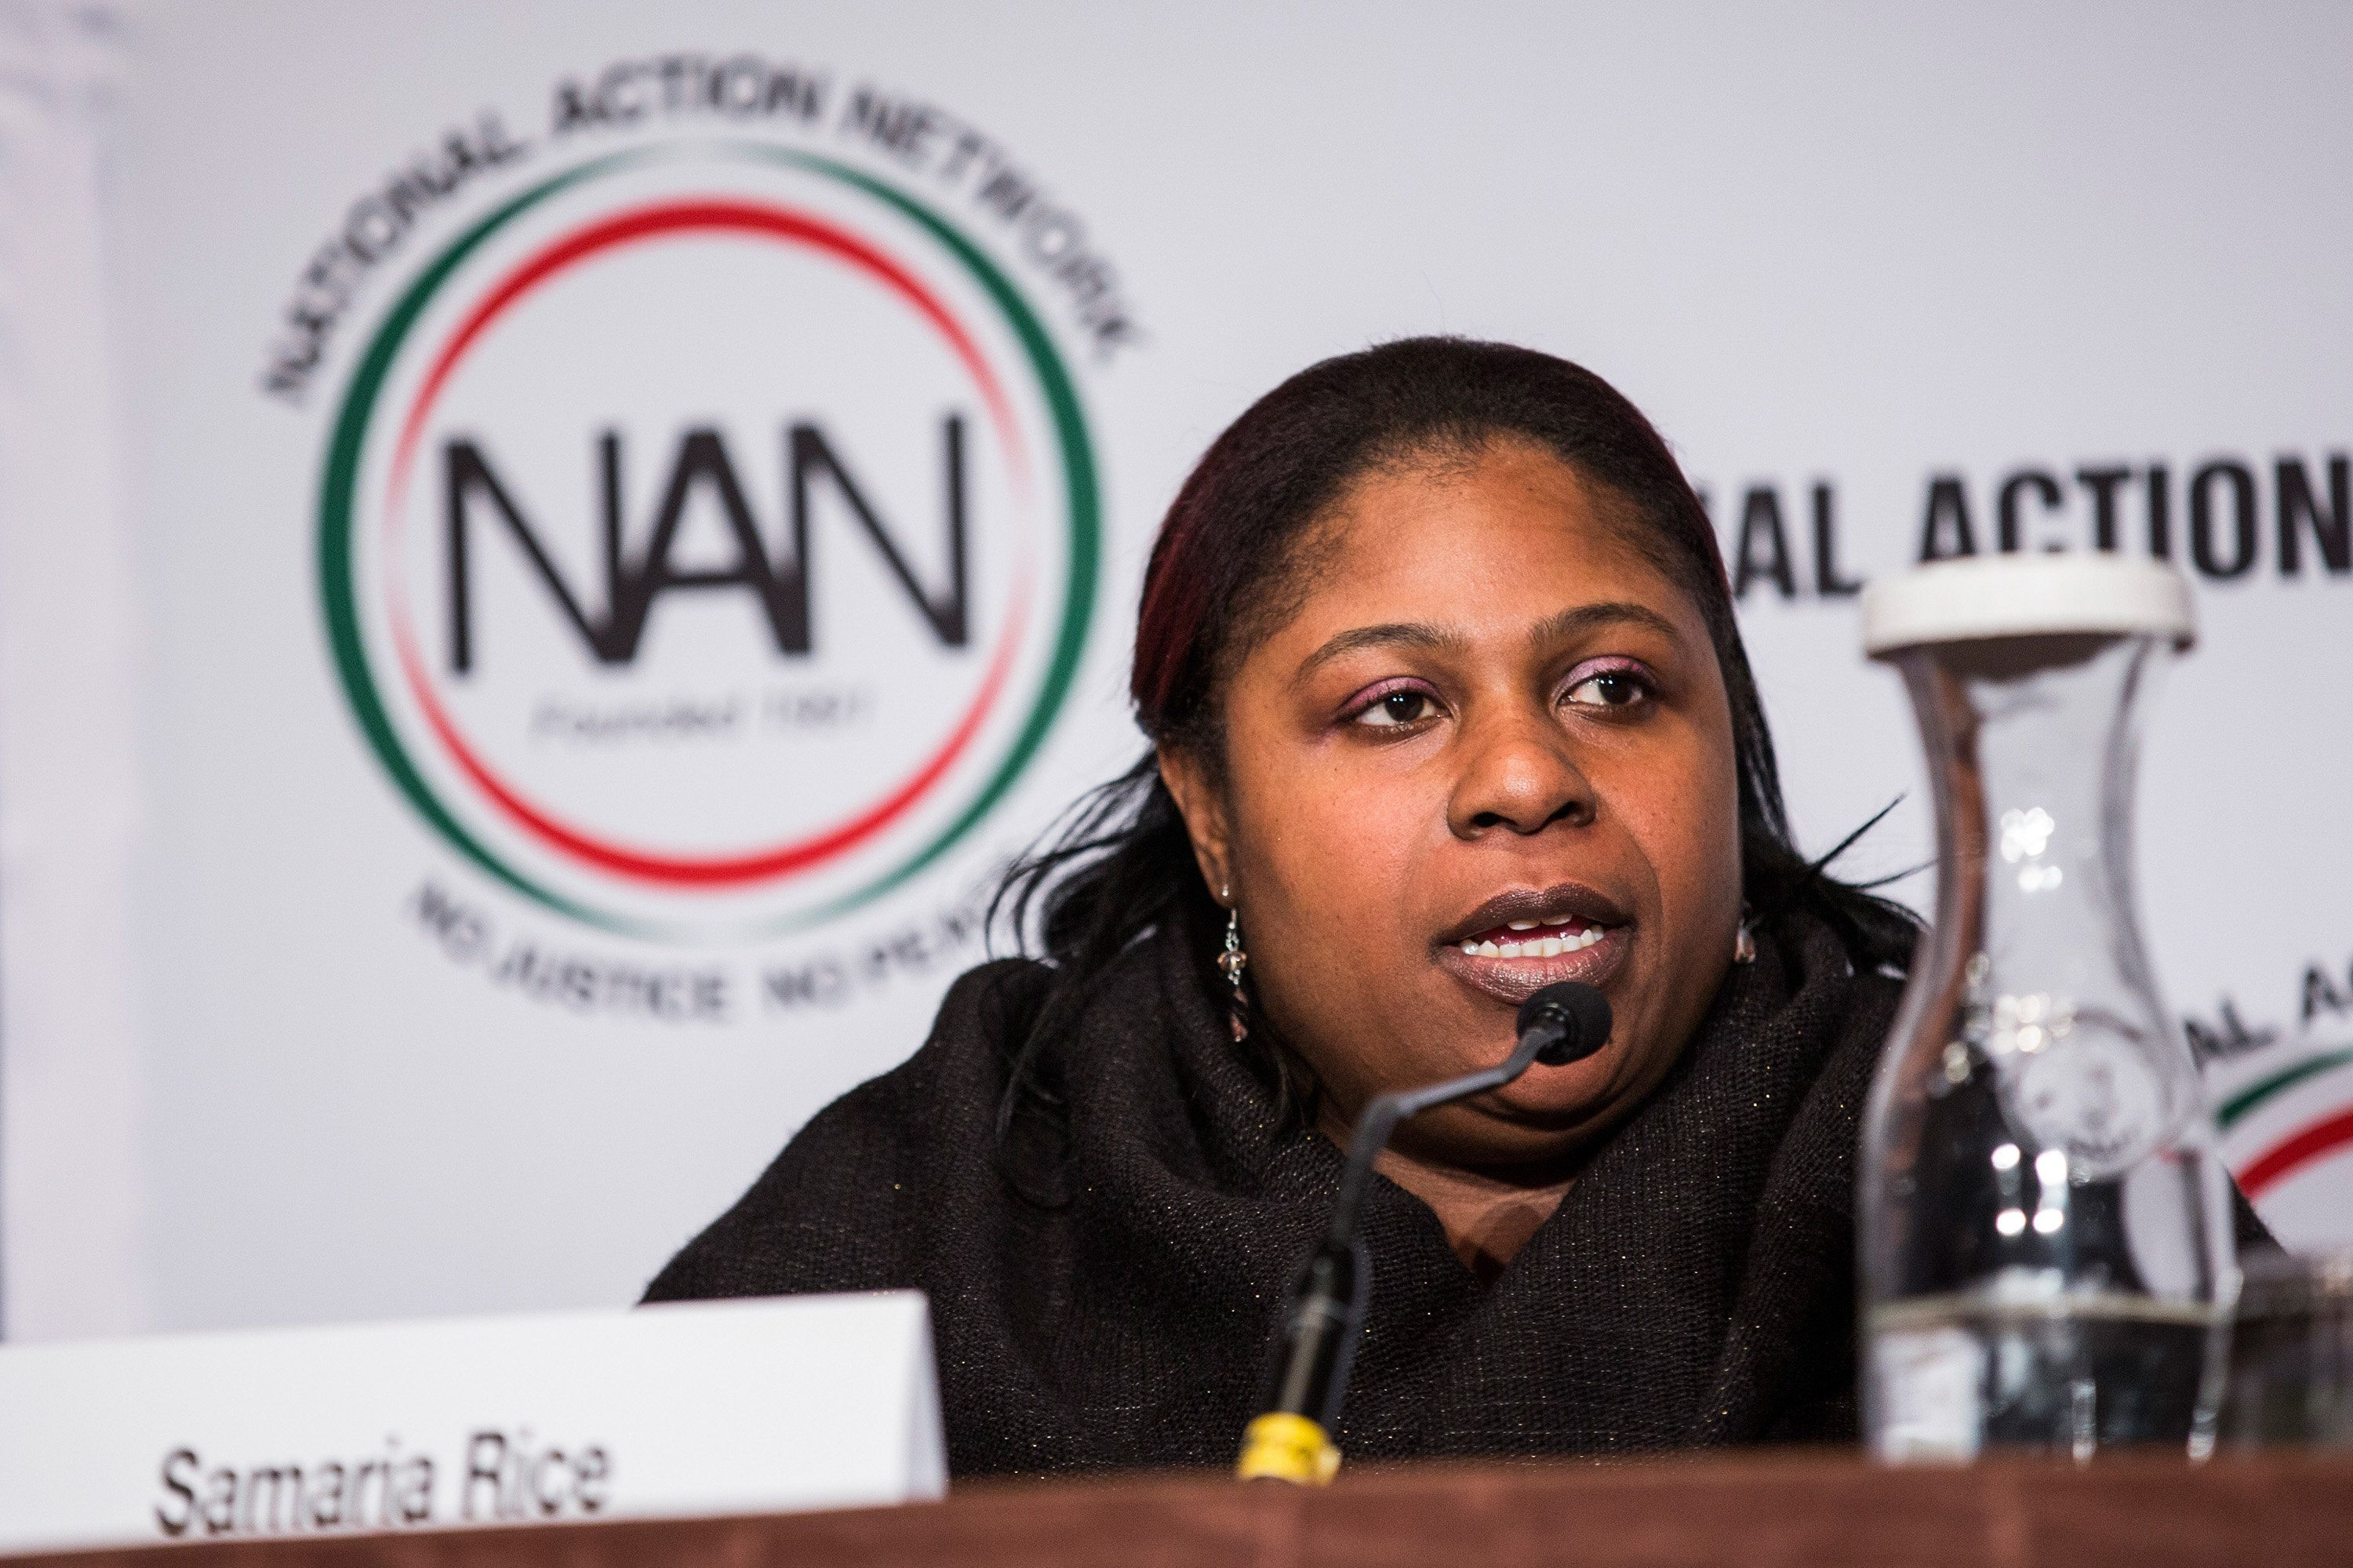 NEW YORK, NY - APRIL 08:  Samaria Rice, mother of Tamir Rice- who was shot to death by a police officer - speak on a panel titled 'The Impact of Police Brutality - The Victims Speak' at the National Action Network (NAN) national convention on April 8, 2015 in New York City. Reverend Al Sharpton founded NAN in 1991; the convention hosted various politicians, organizers and religious leaders to talk about the nation's most pressing issues.  (Photo by Andrew Burton/Getty Images)